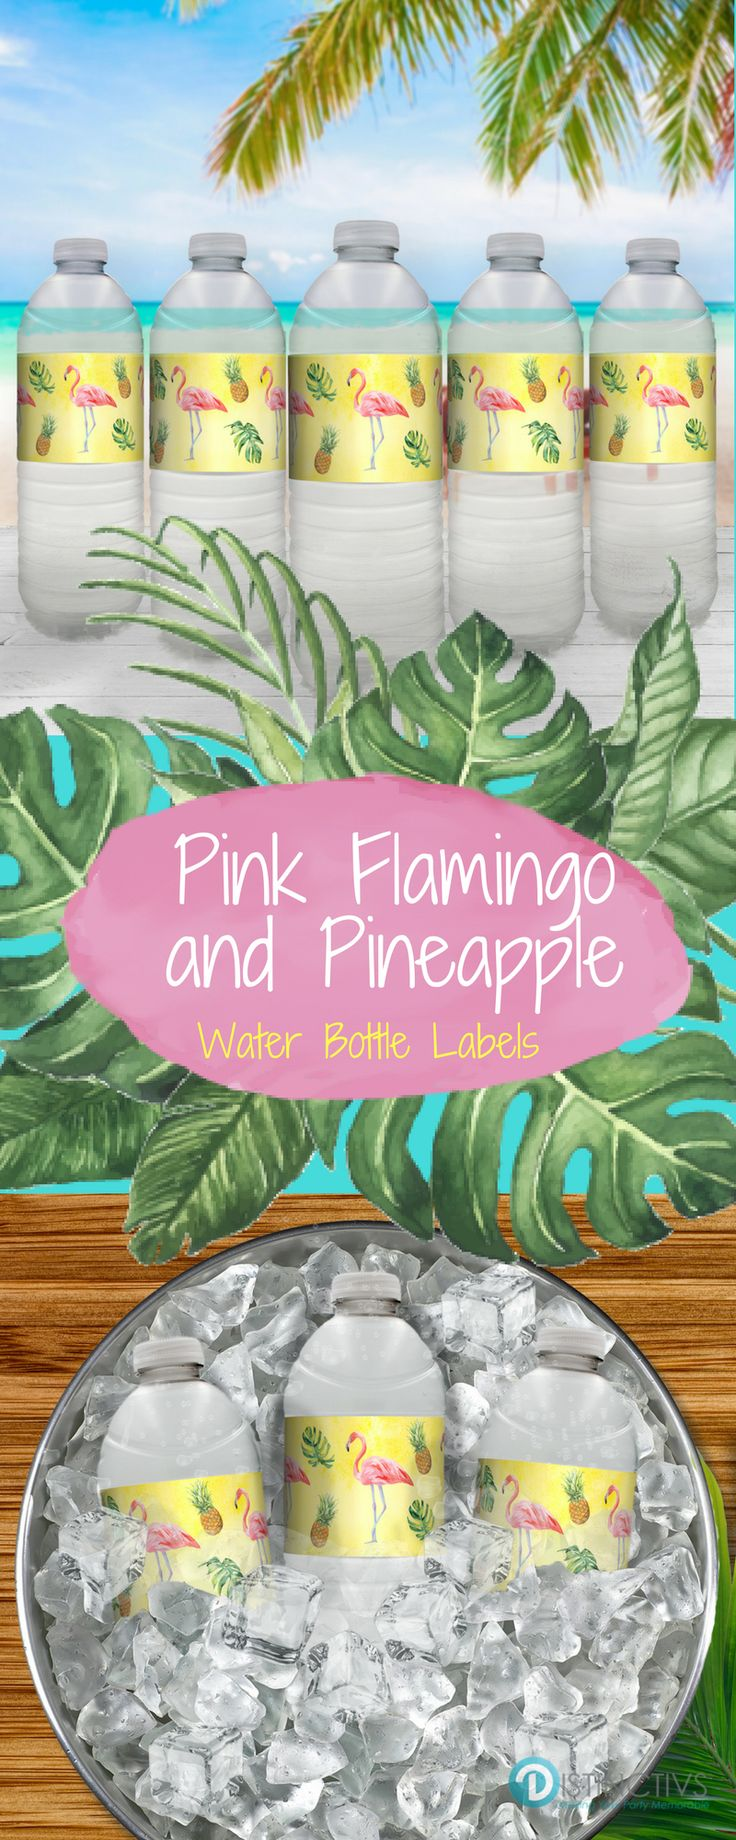 These Flamingo Pineapple Party Water Bottle Labels are perfect for anyTropical Aloha Party.